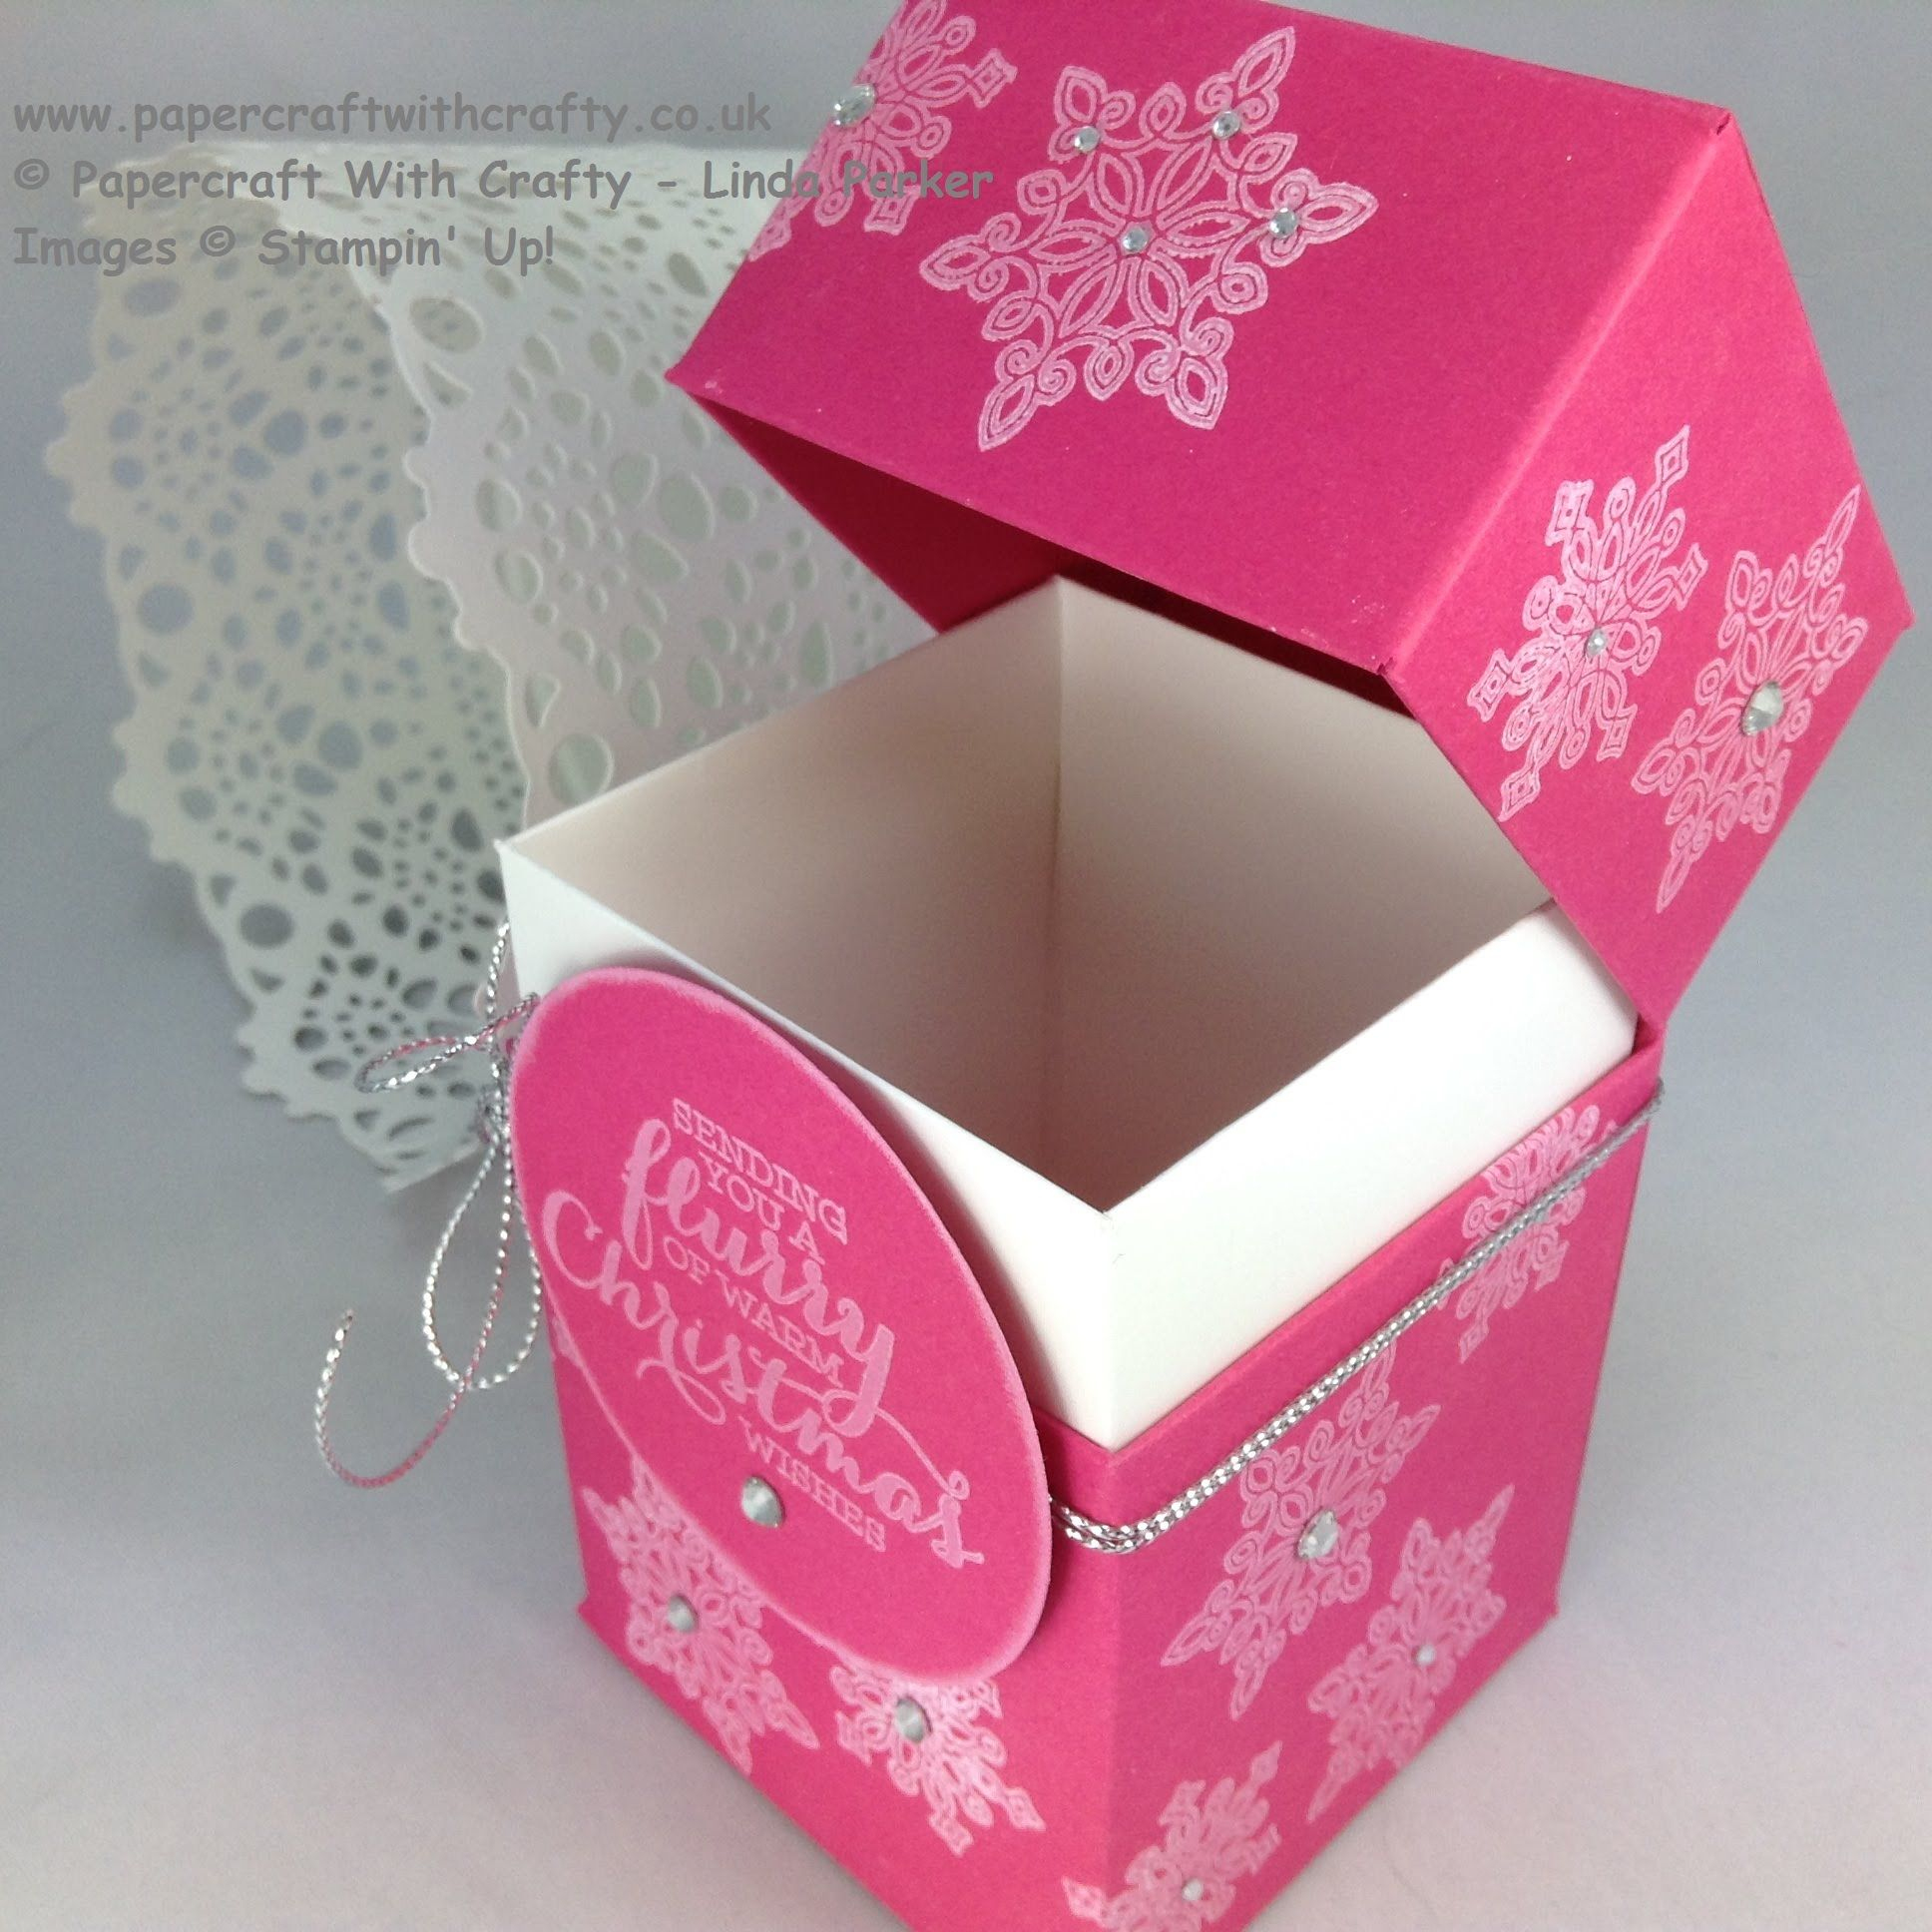 Sturdy Box with Flush Fitting Hinged Lid